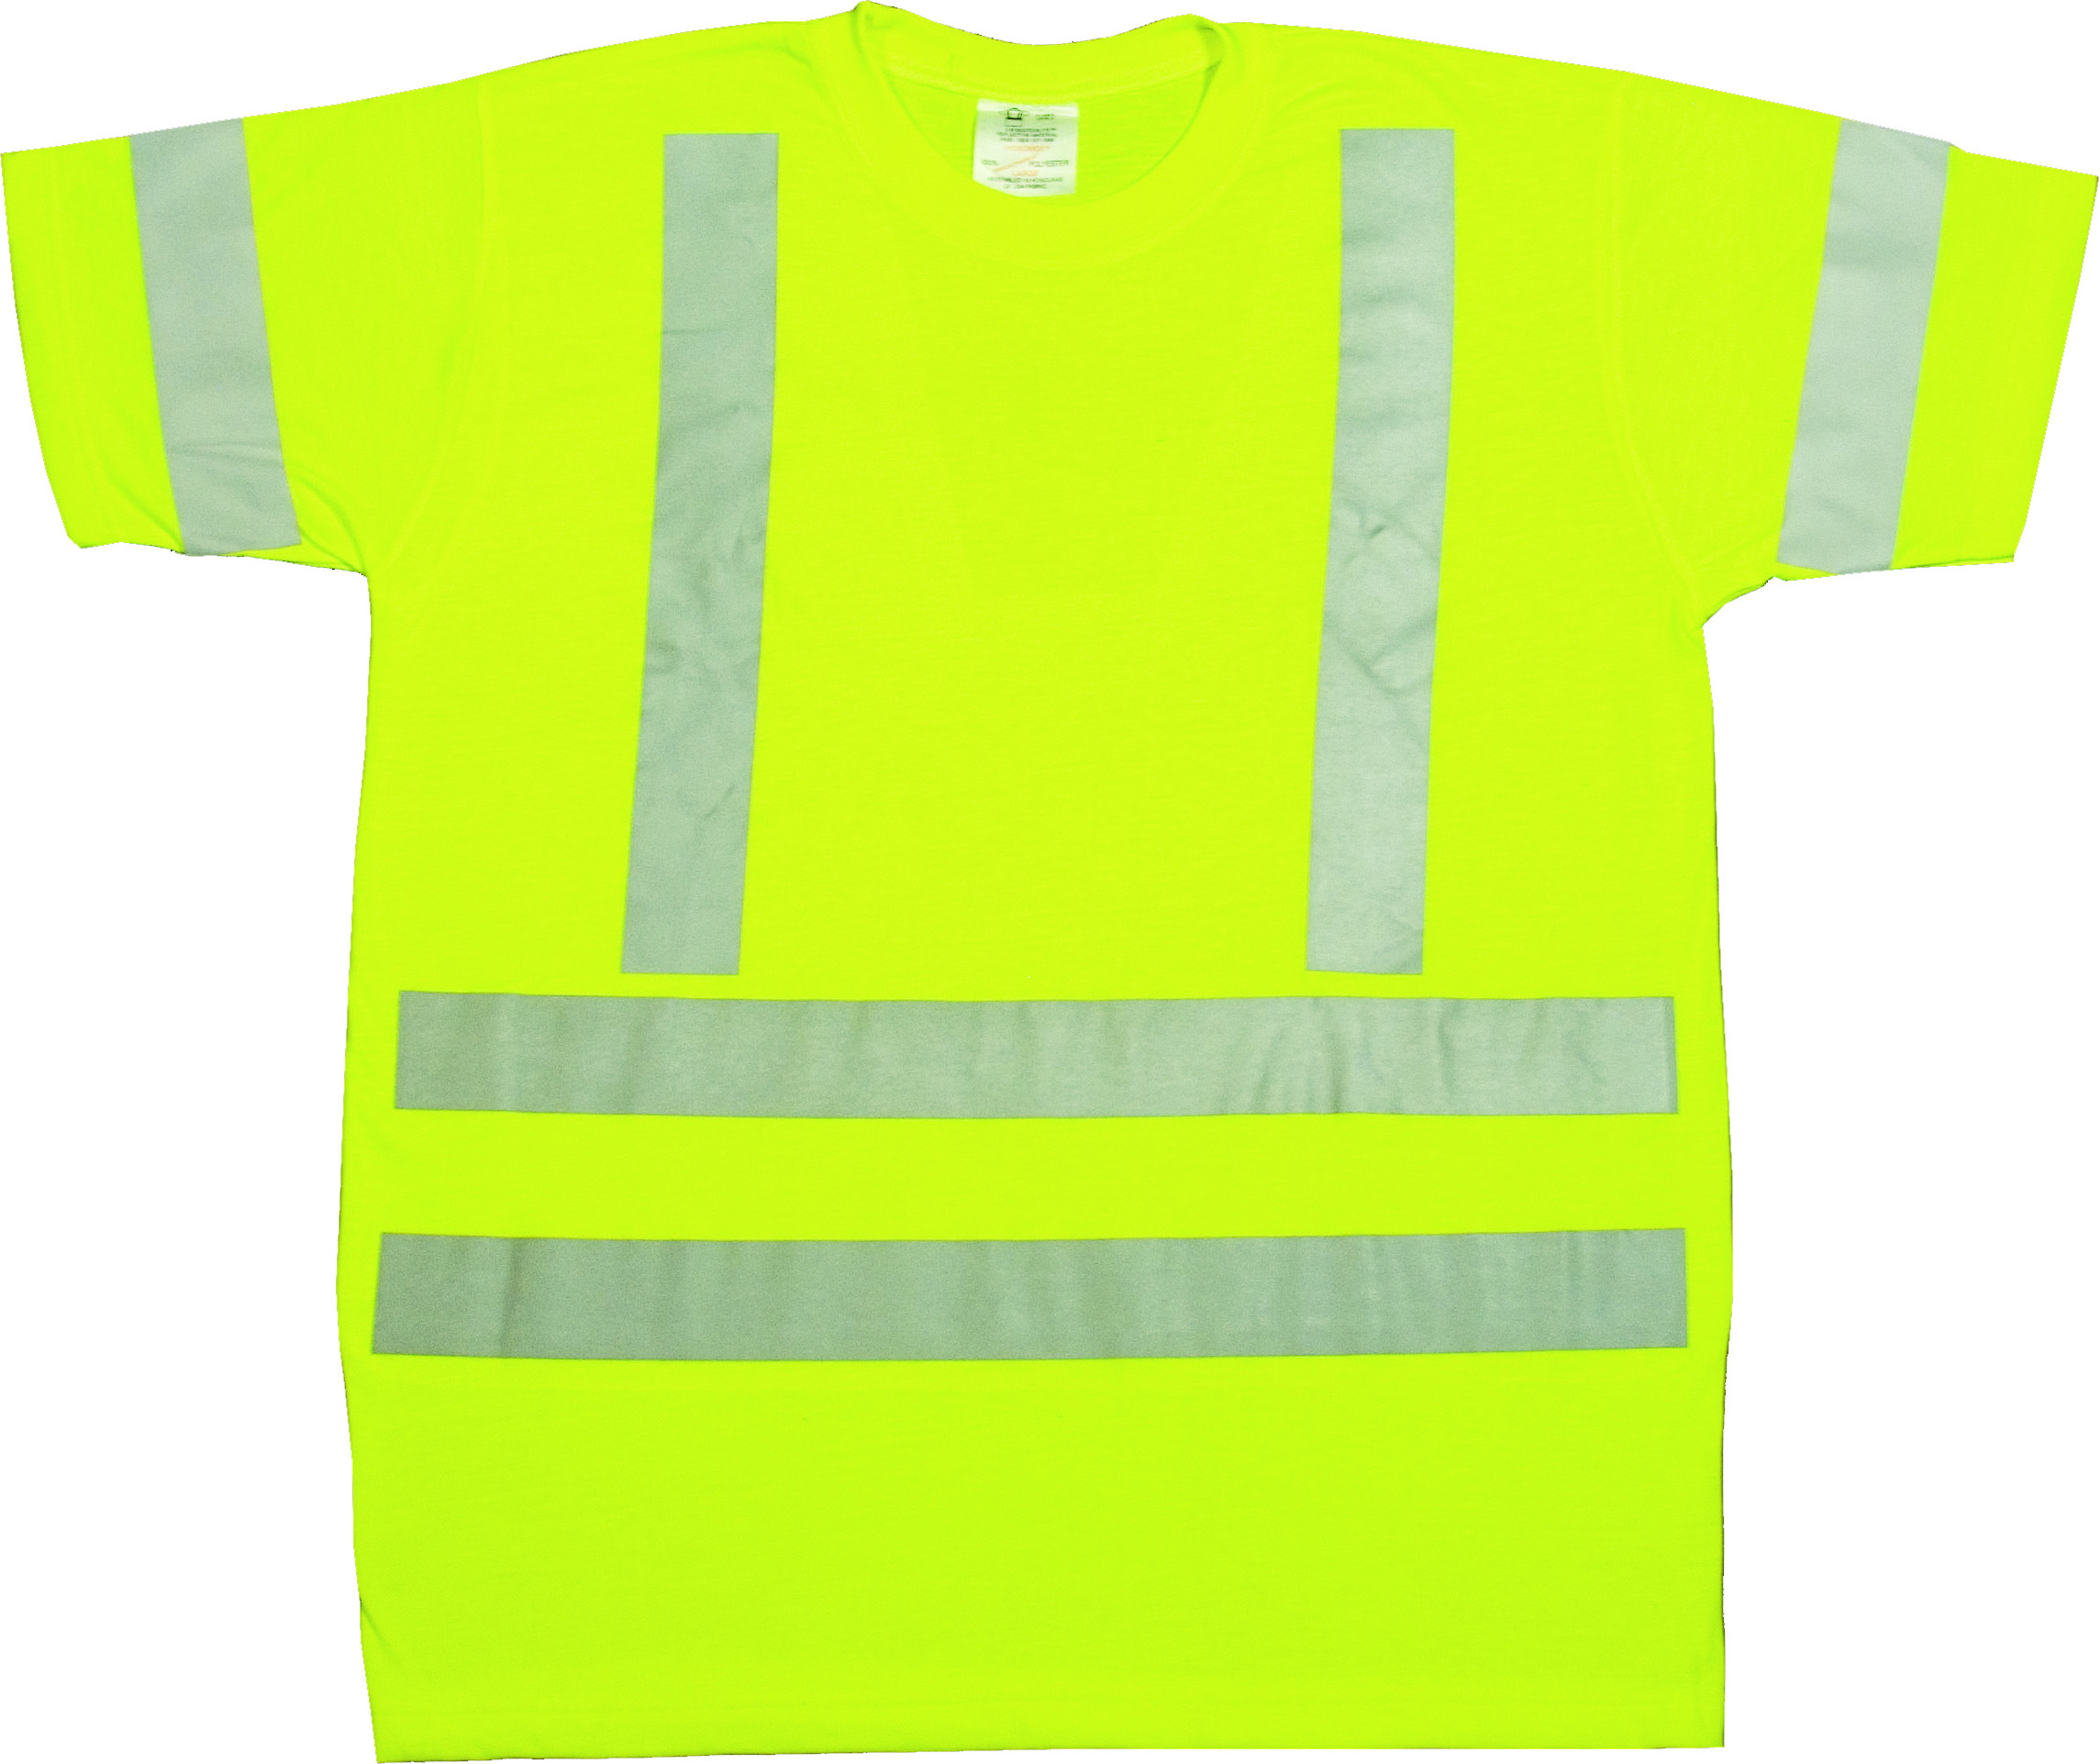 96002-0-103, ANSI Class 3 Durable Flame Retardant T-Shirt, Lime, Large, Mutual Industries